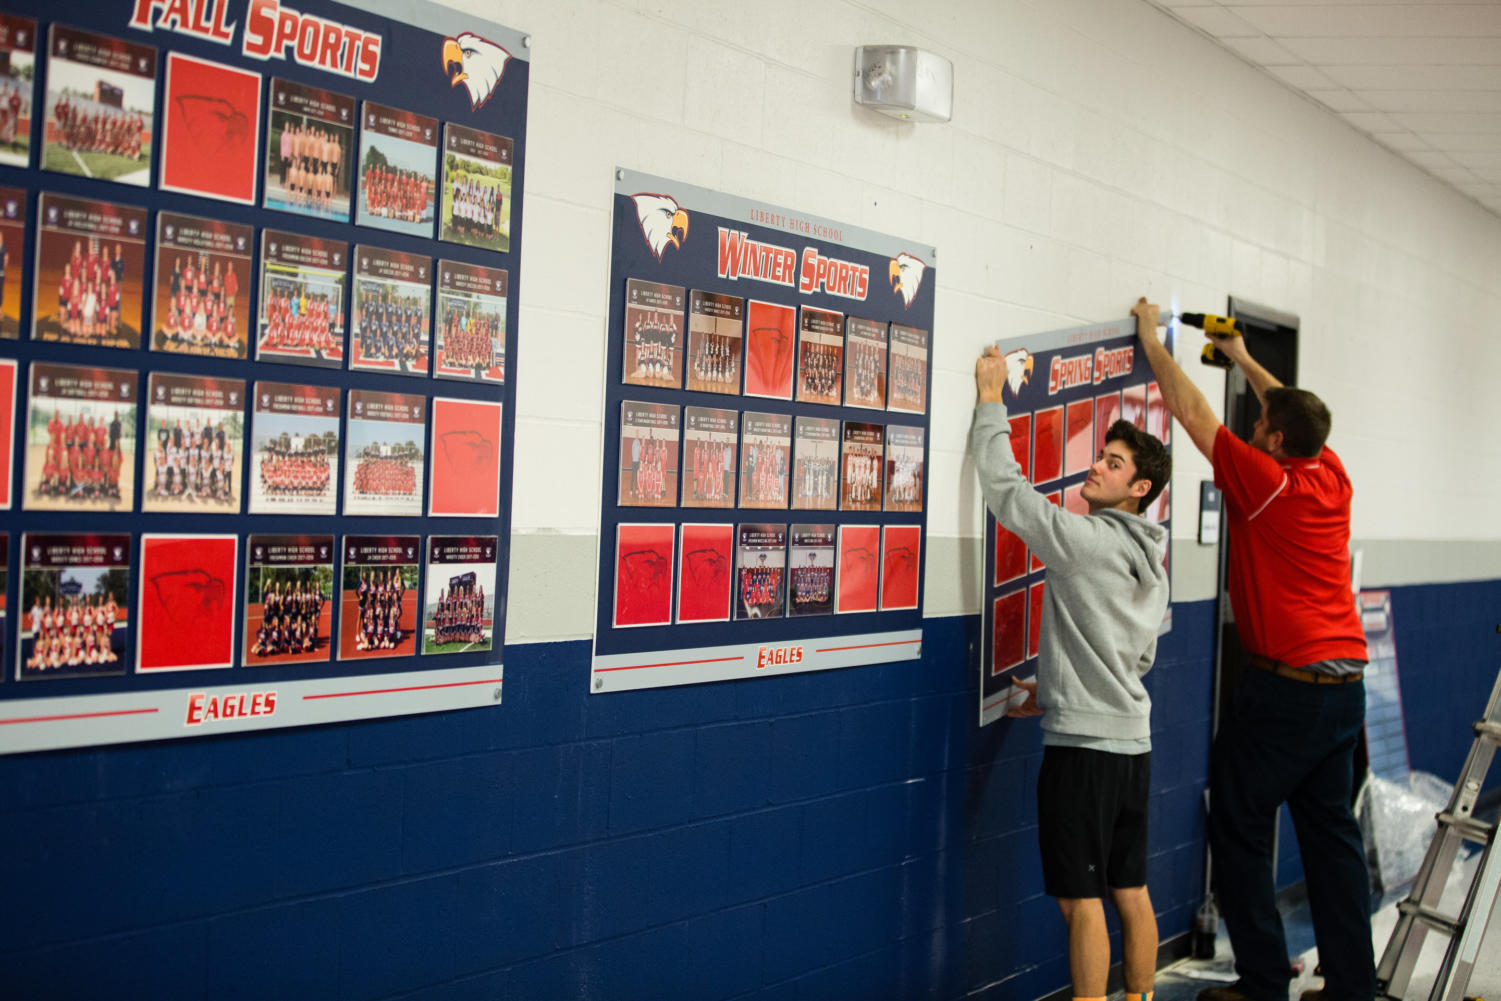 Mr. Labrot and senior Mike Rybak put up one of the boards for the Champions Hallway.